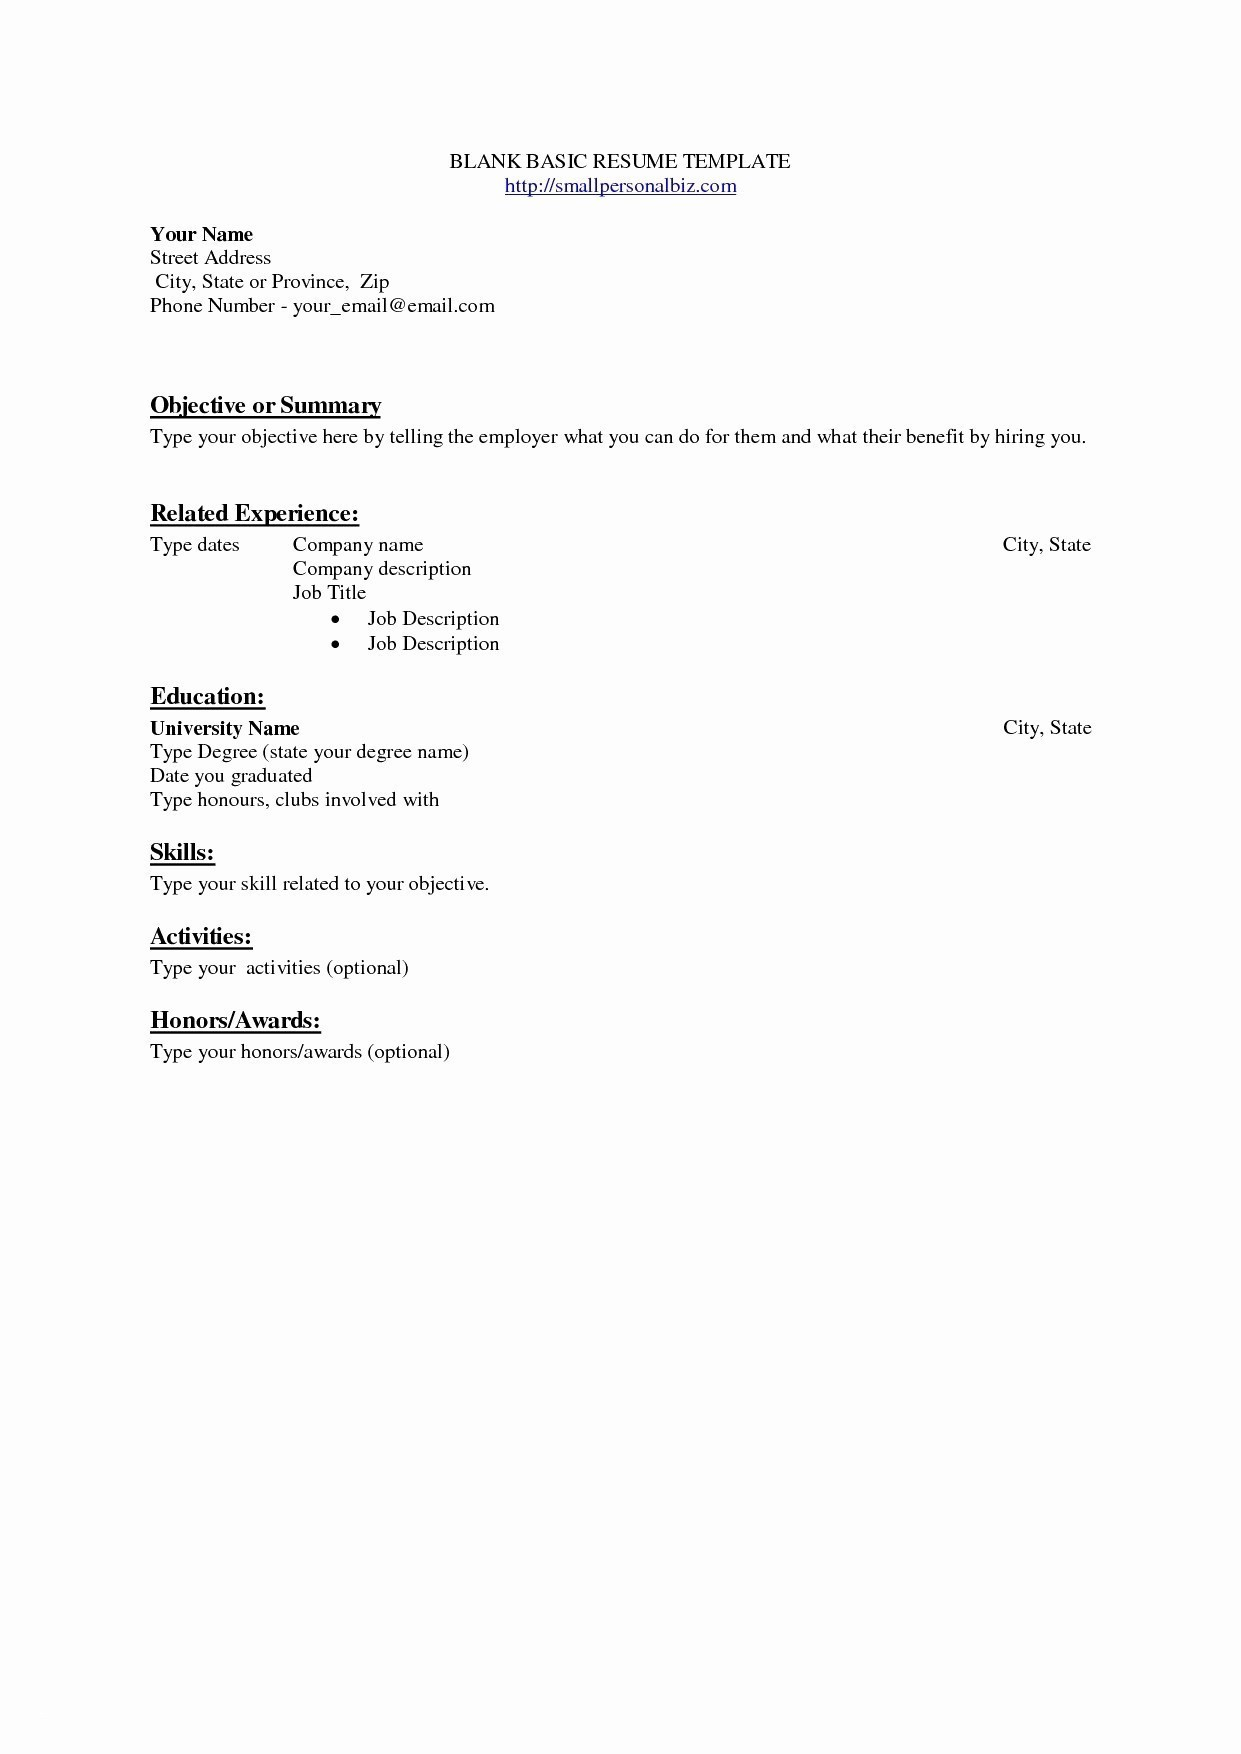 10 Common App Resume Example Ideas | Resume Database Template